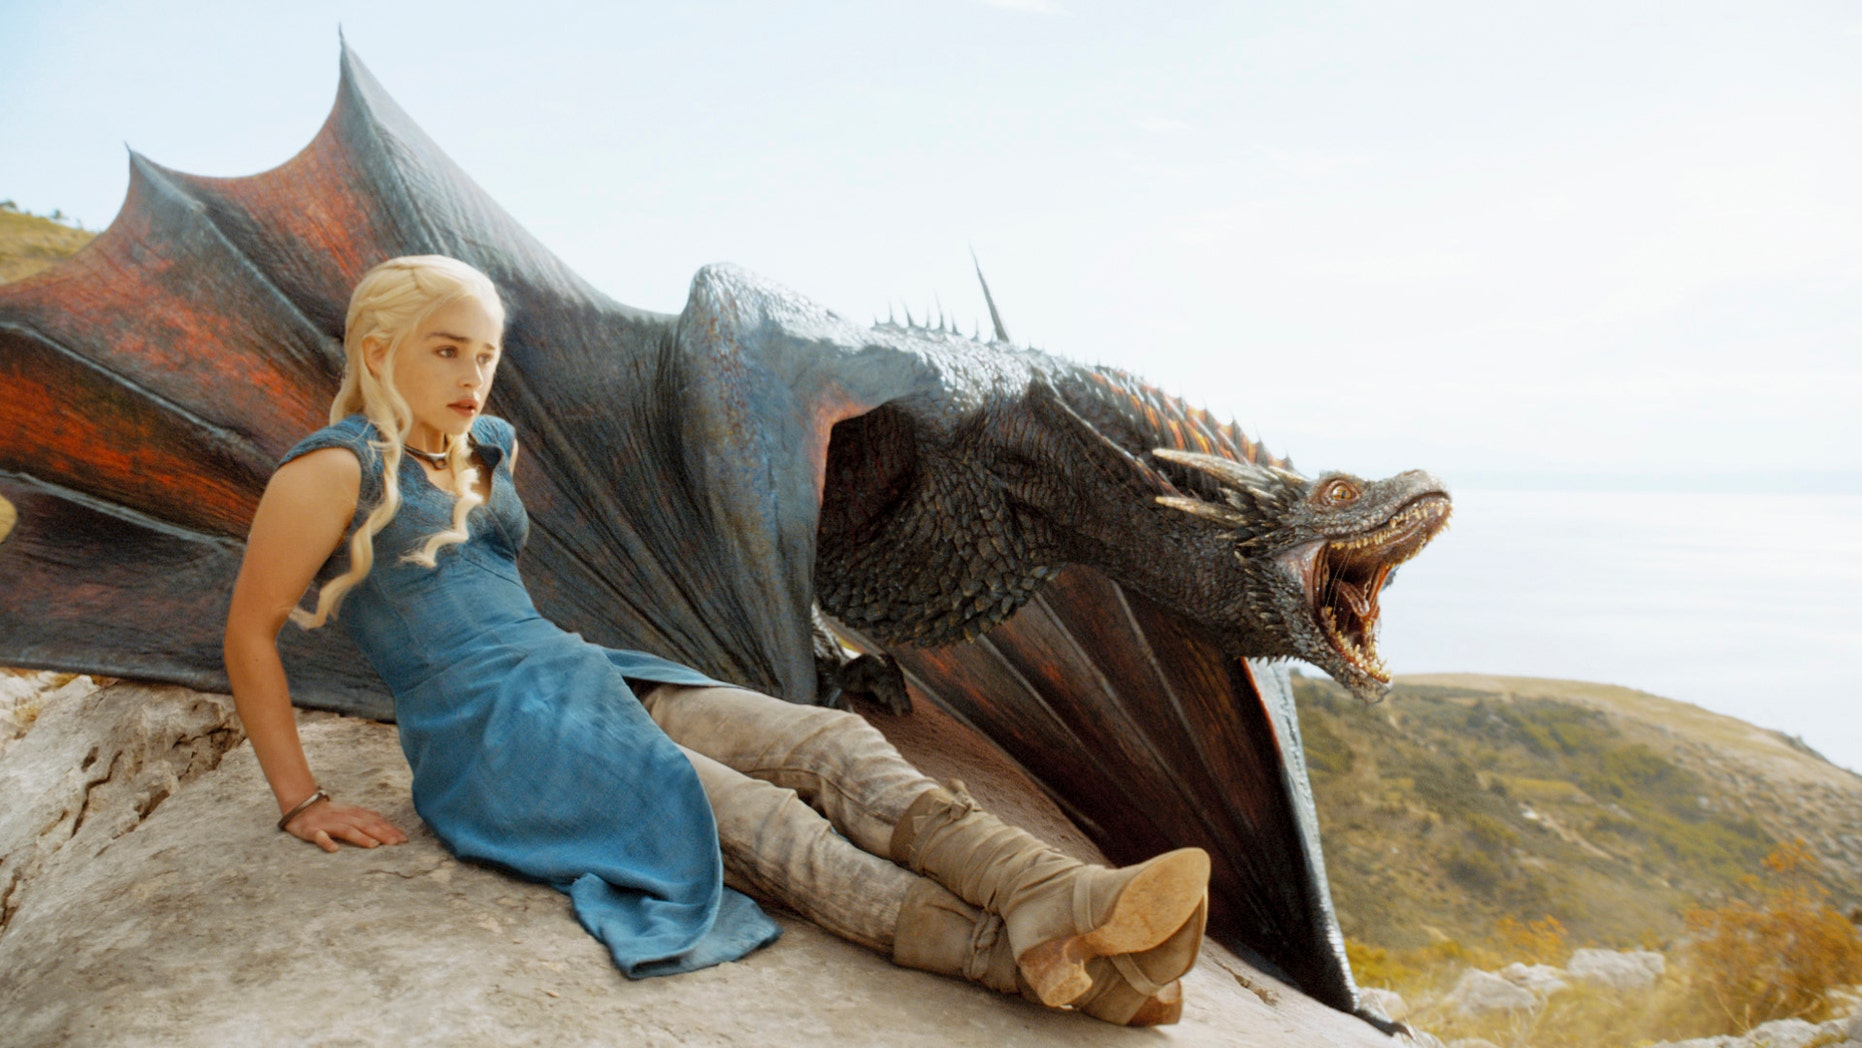 'Game of Thrones' actress Emilia Clarke (Daenerys Targaryen) and companion (Courtesy HBO)